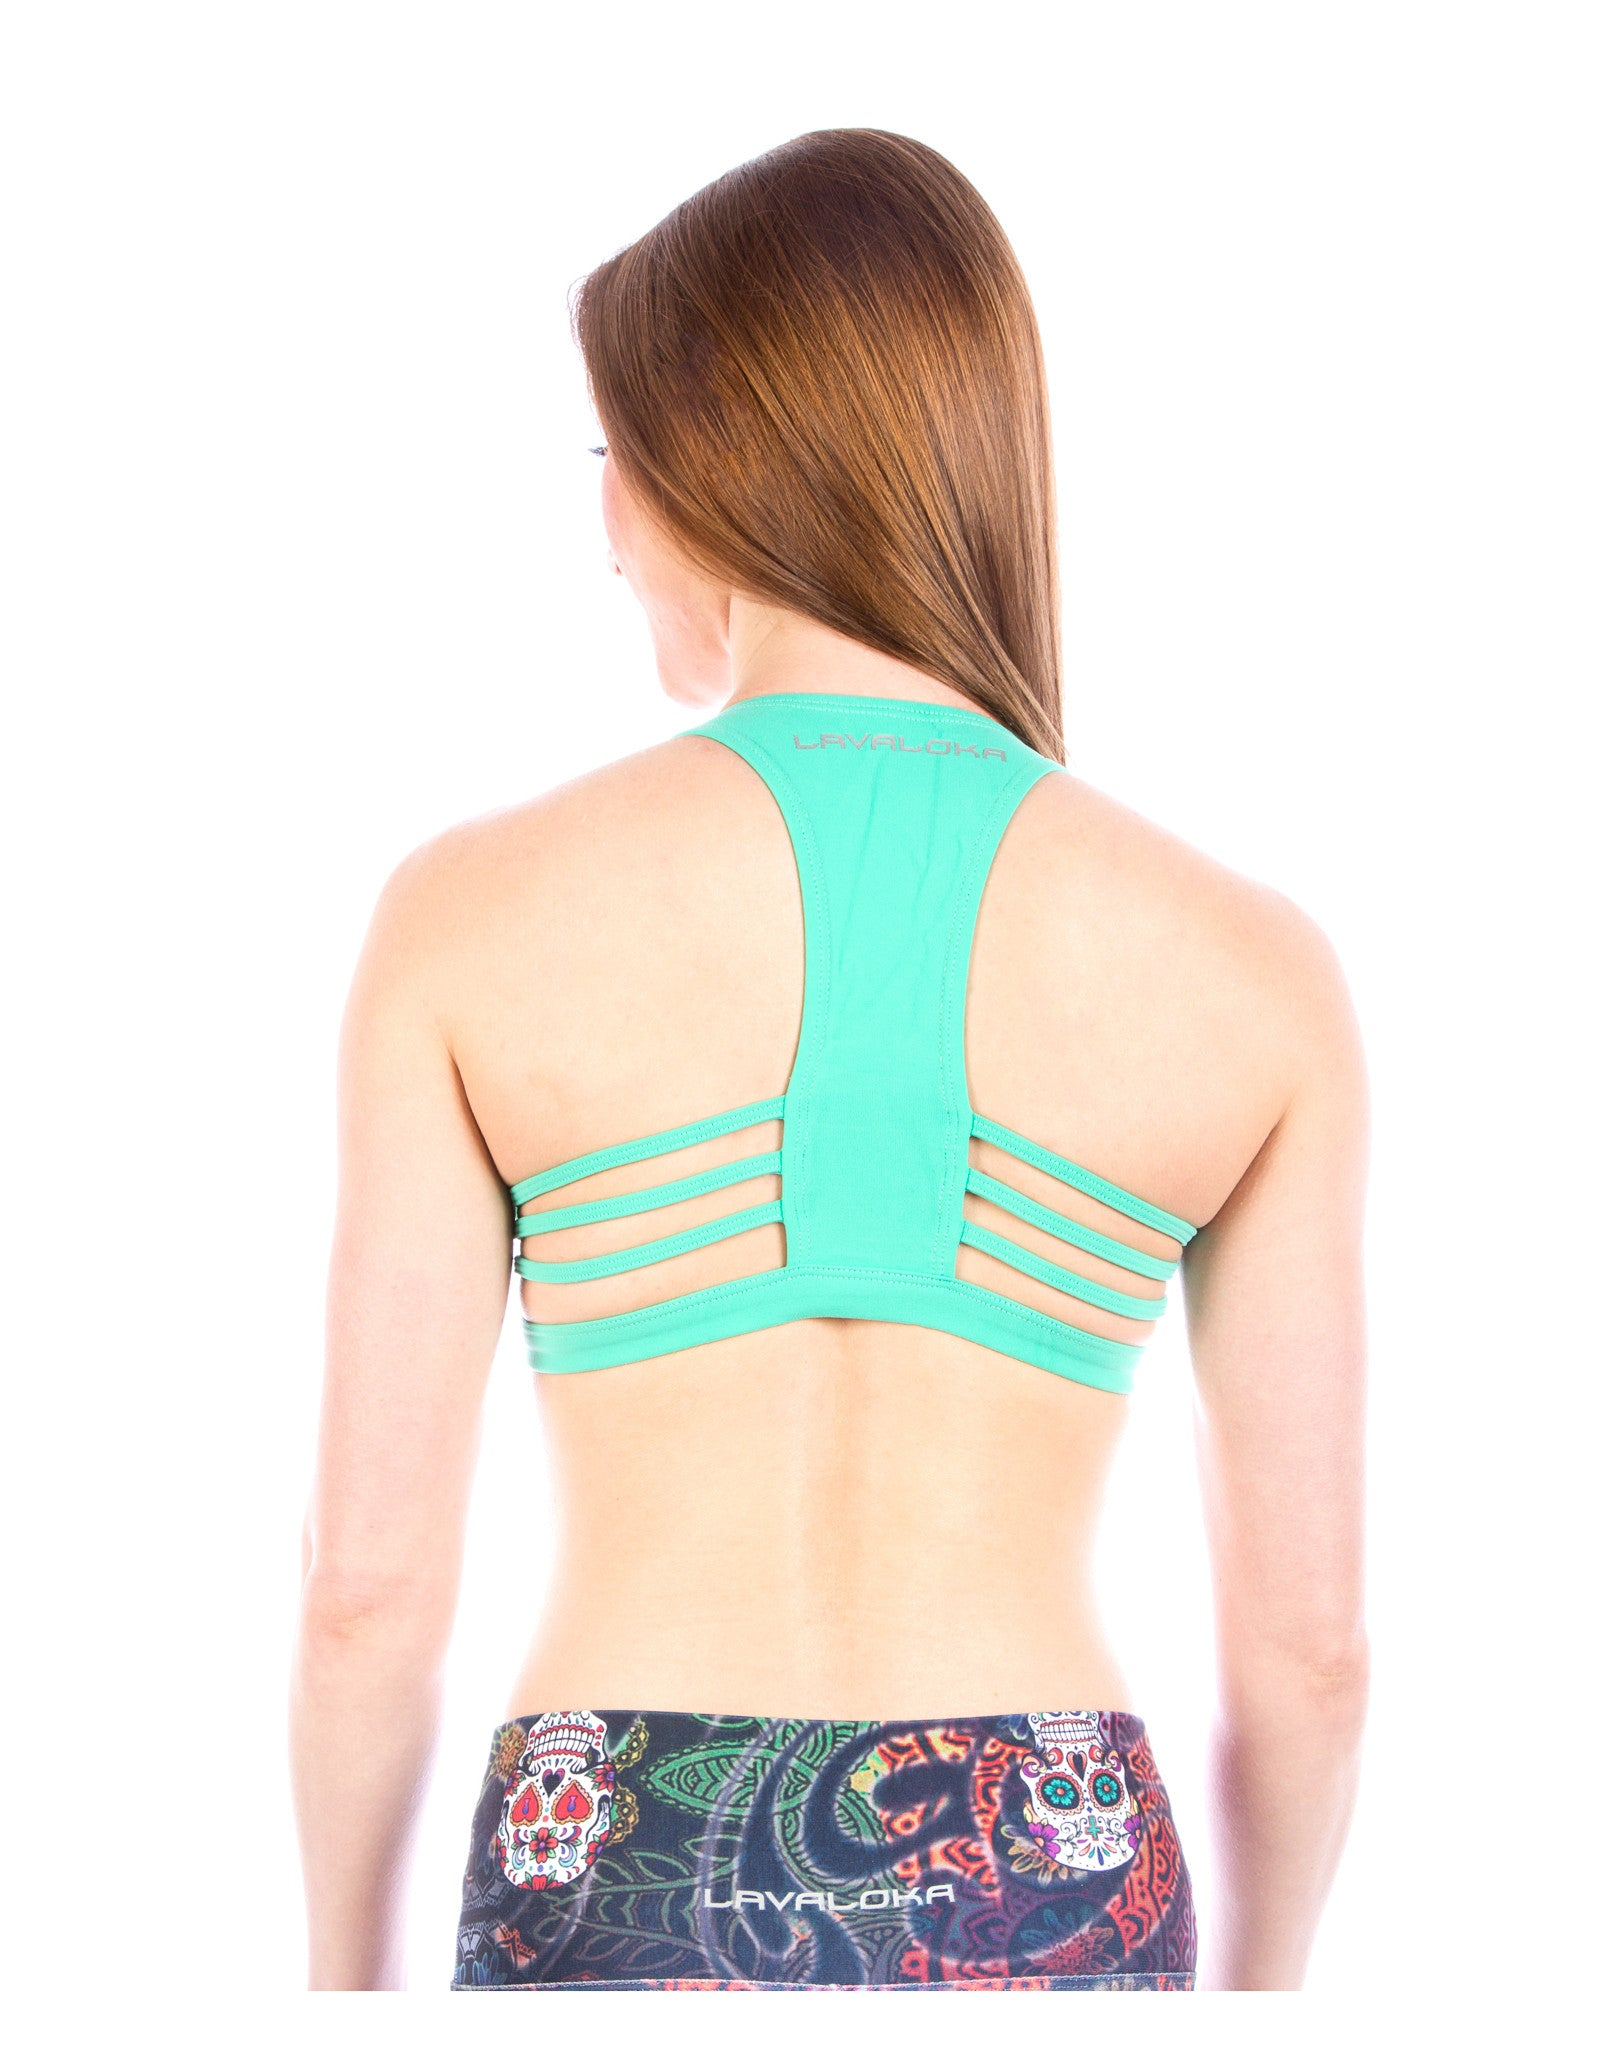 Maria Sports Bra - Sports Bra Collection LavaLoka - Green - buy now in every color